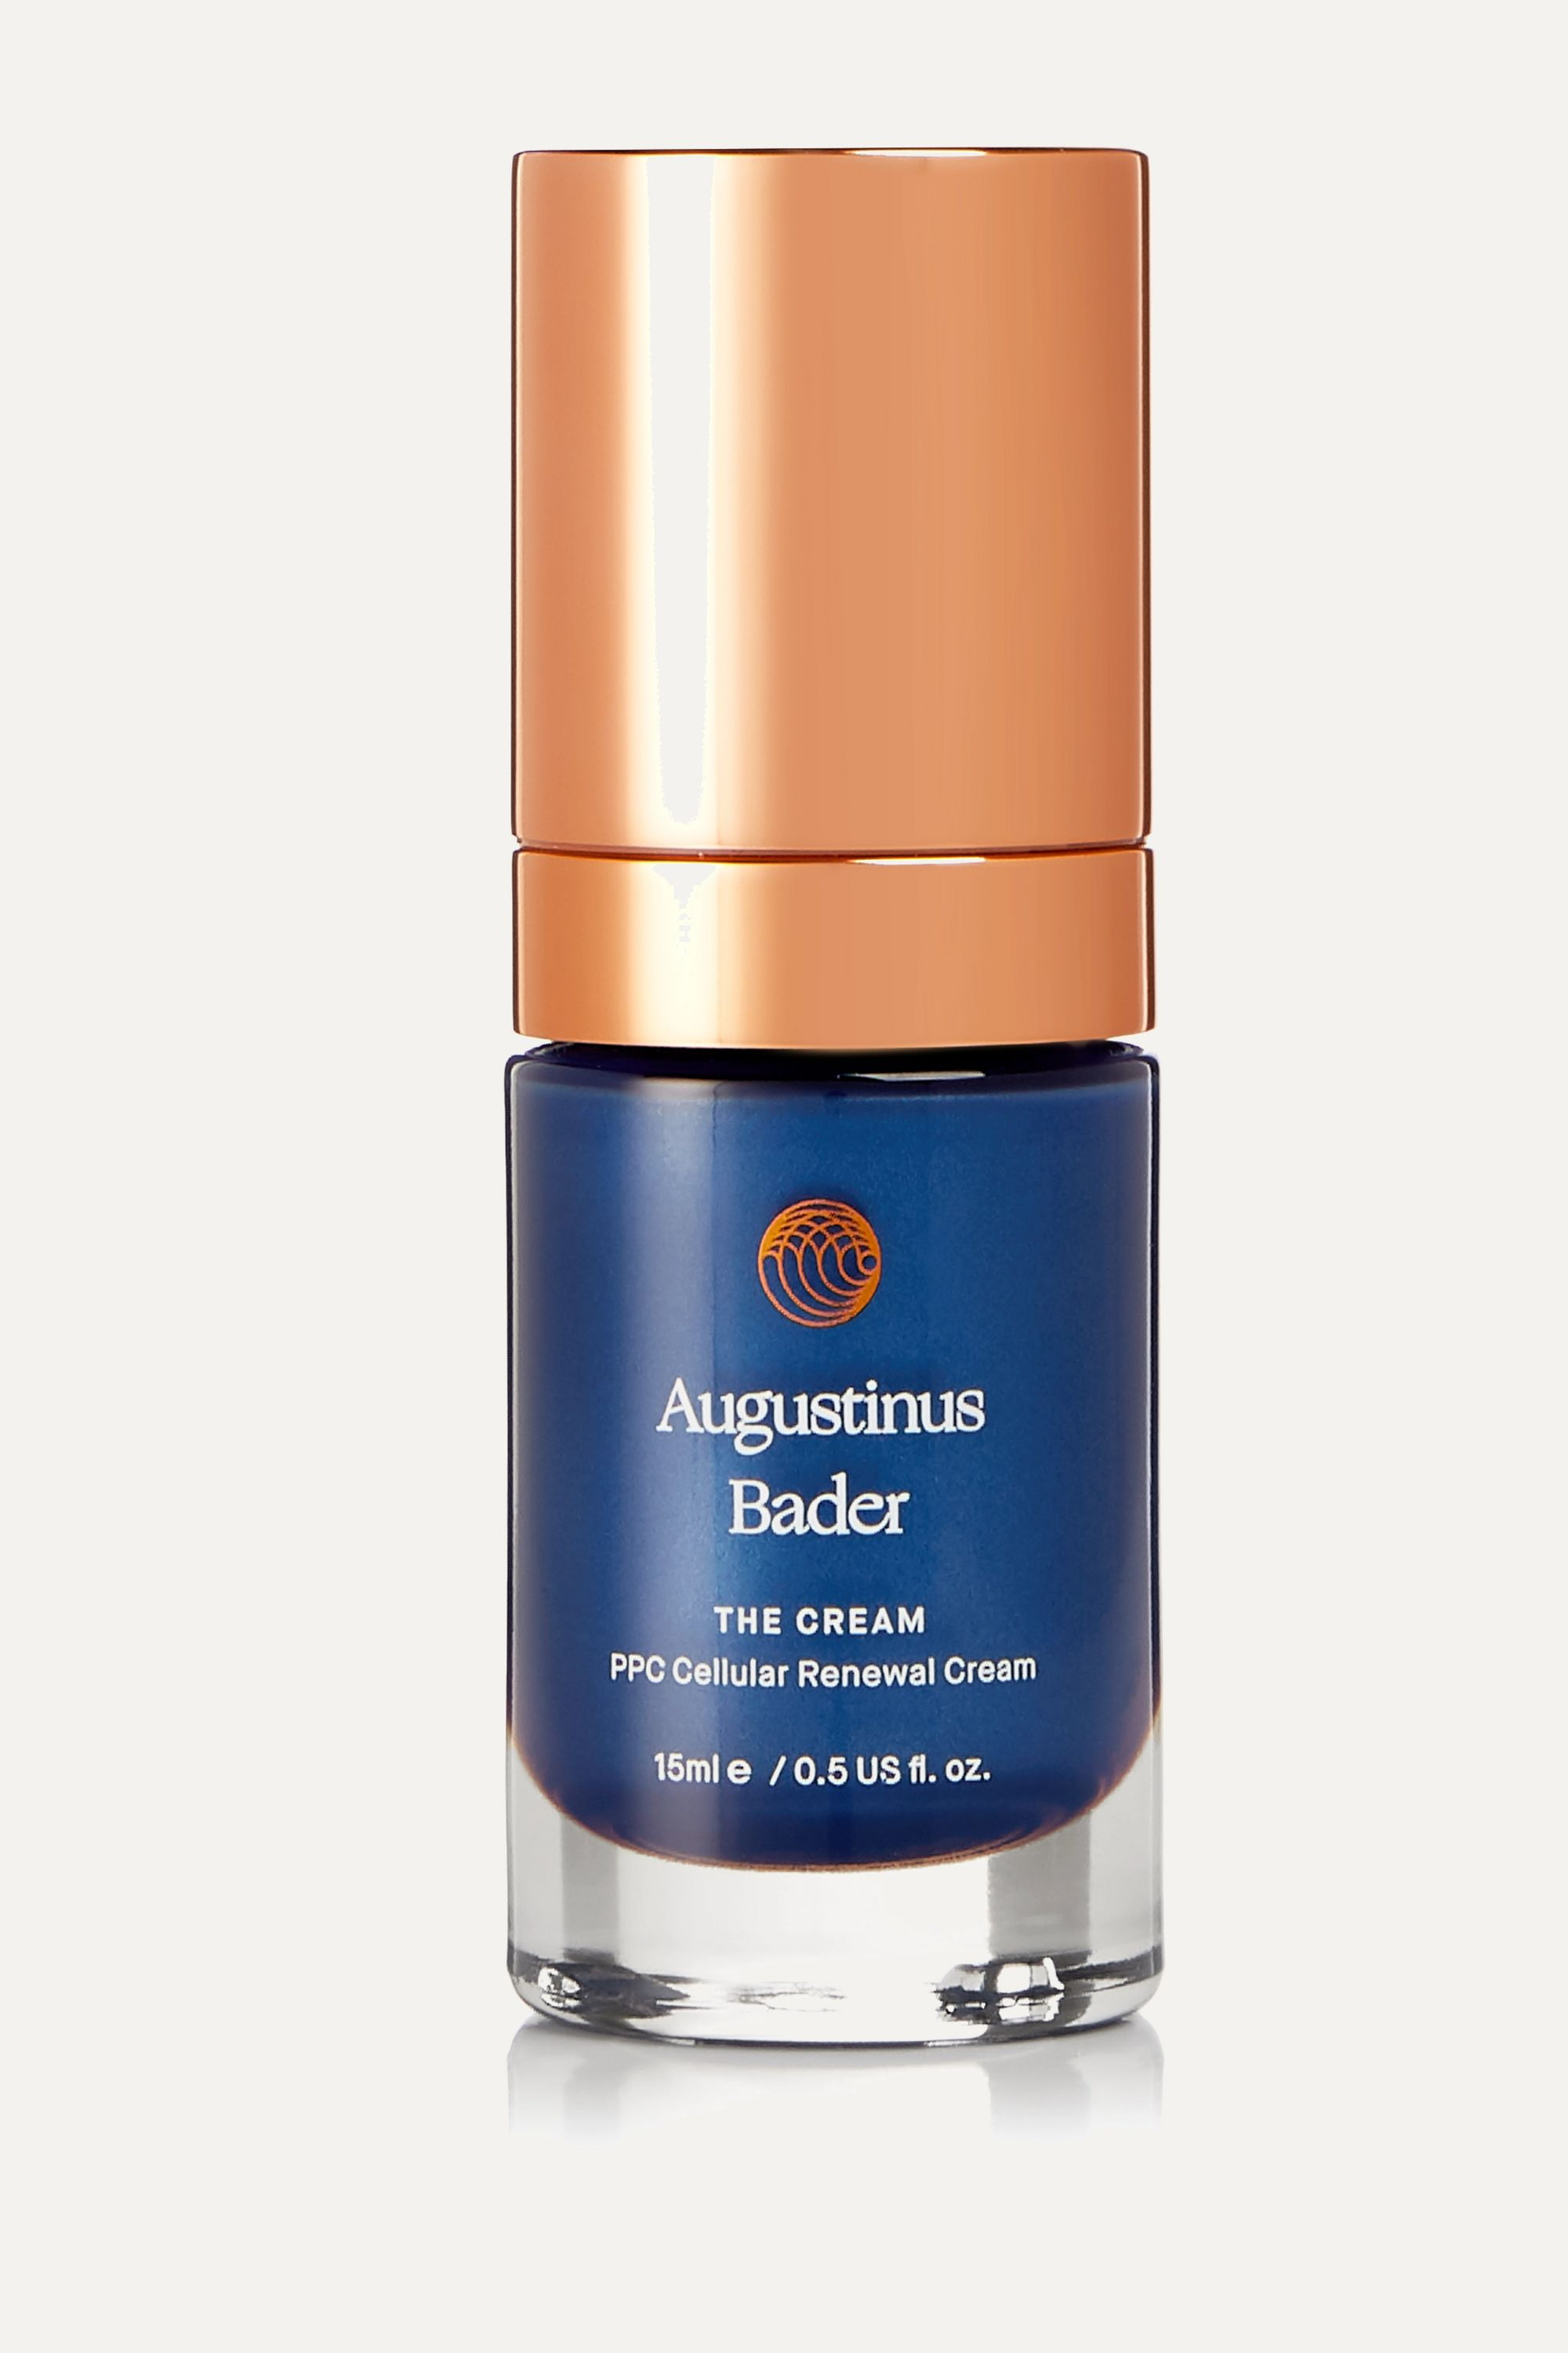 Augustinus Bader The Cream, 15ml